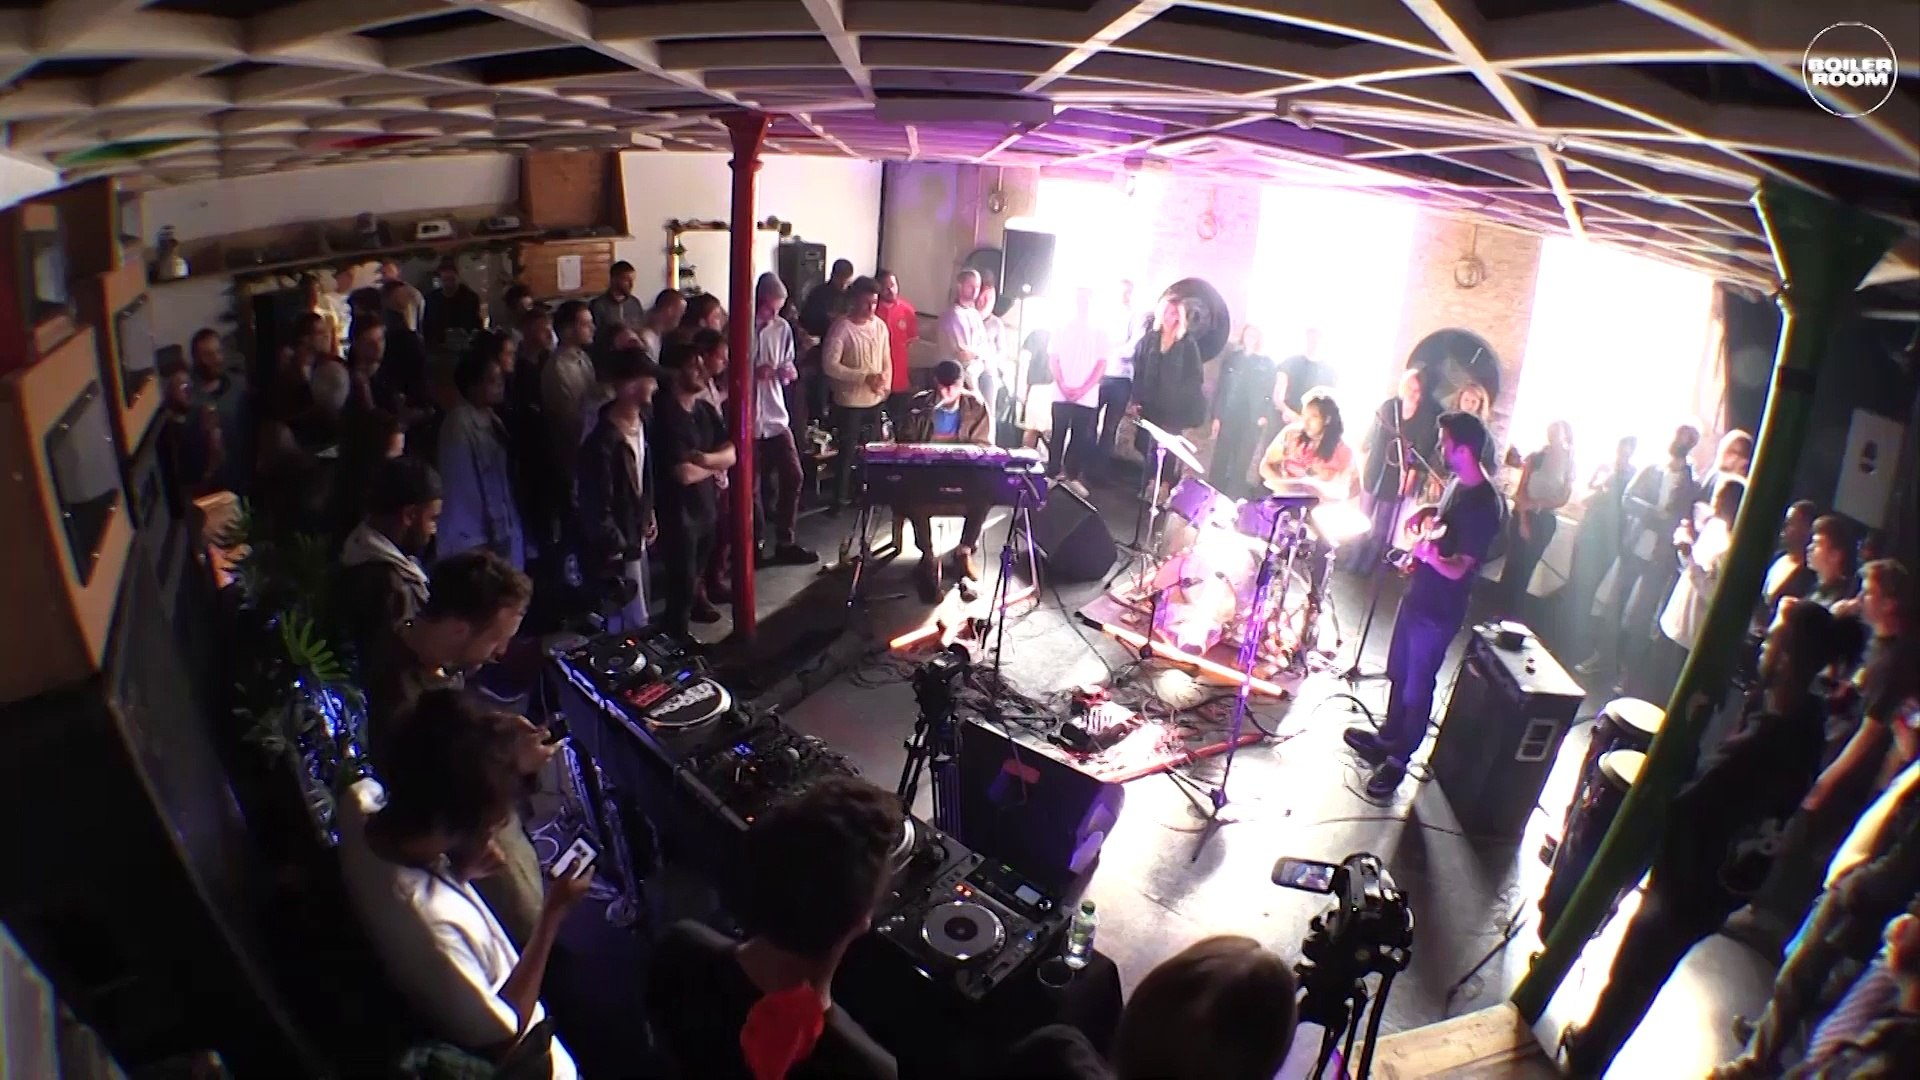 Henry Wu presents The Yussef Kamaal Trio Boiler Room London DJ Set